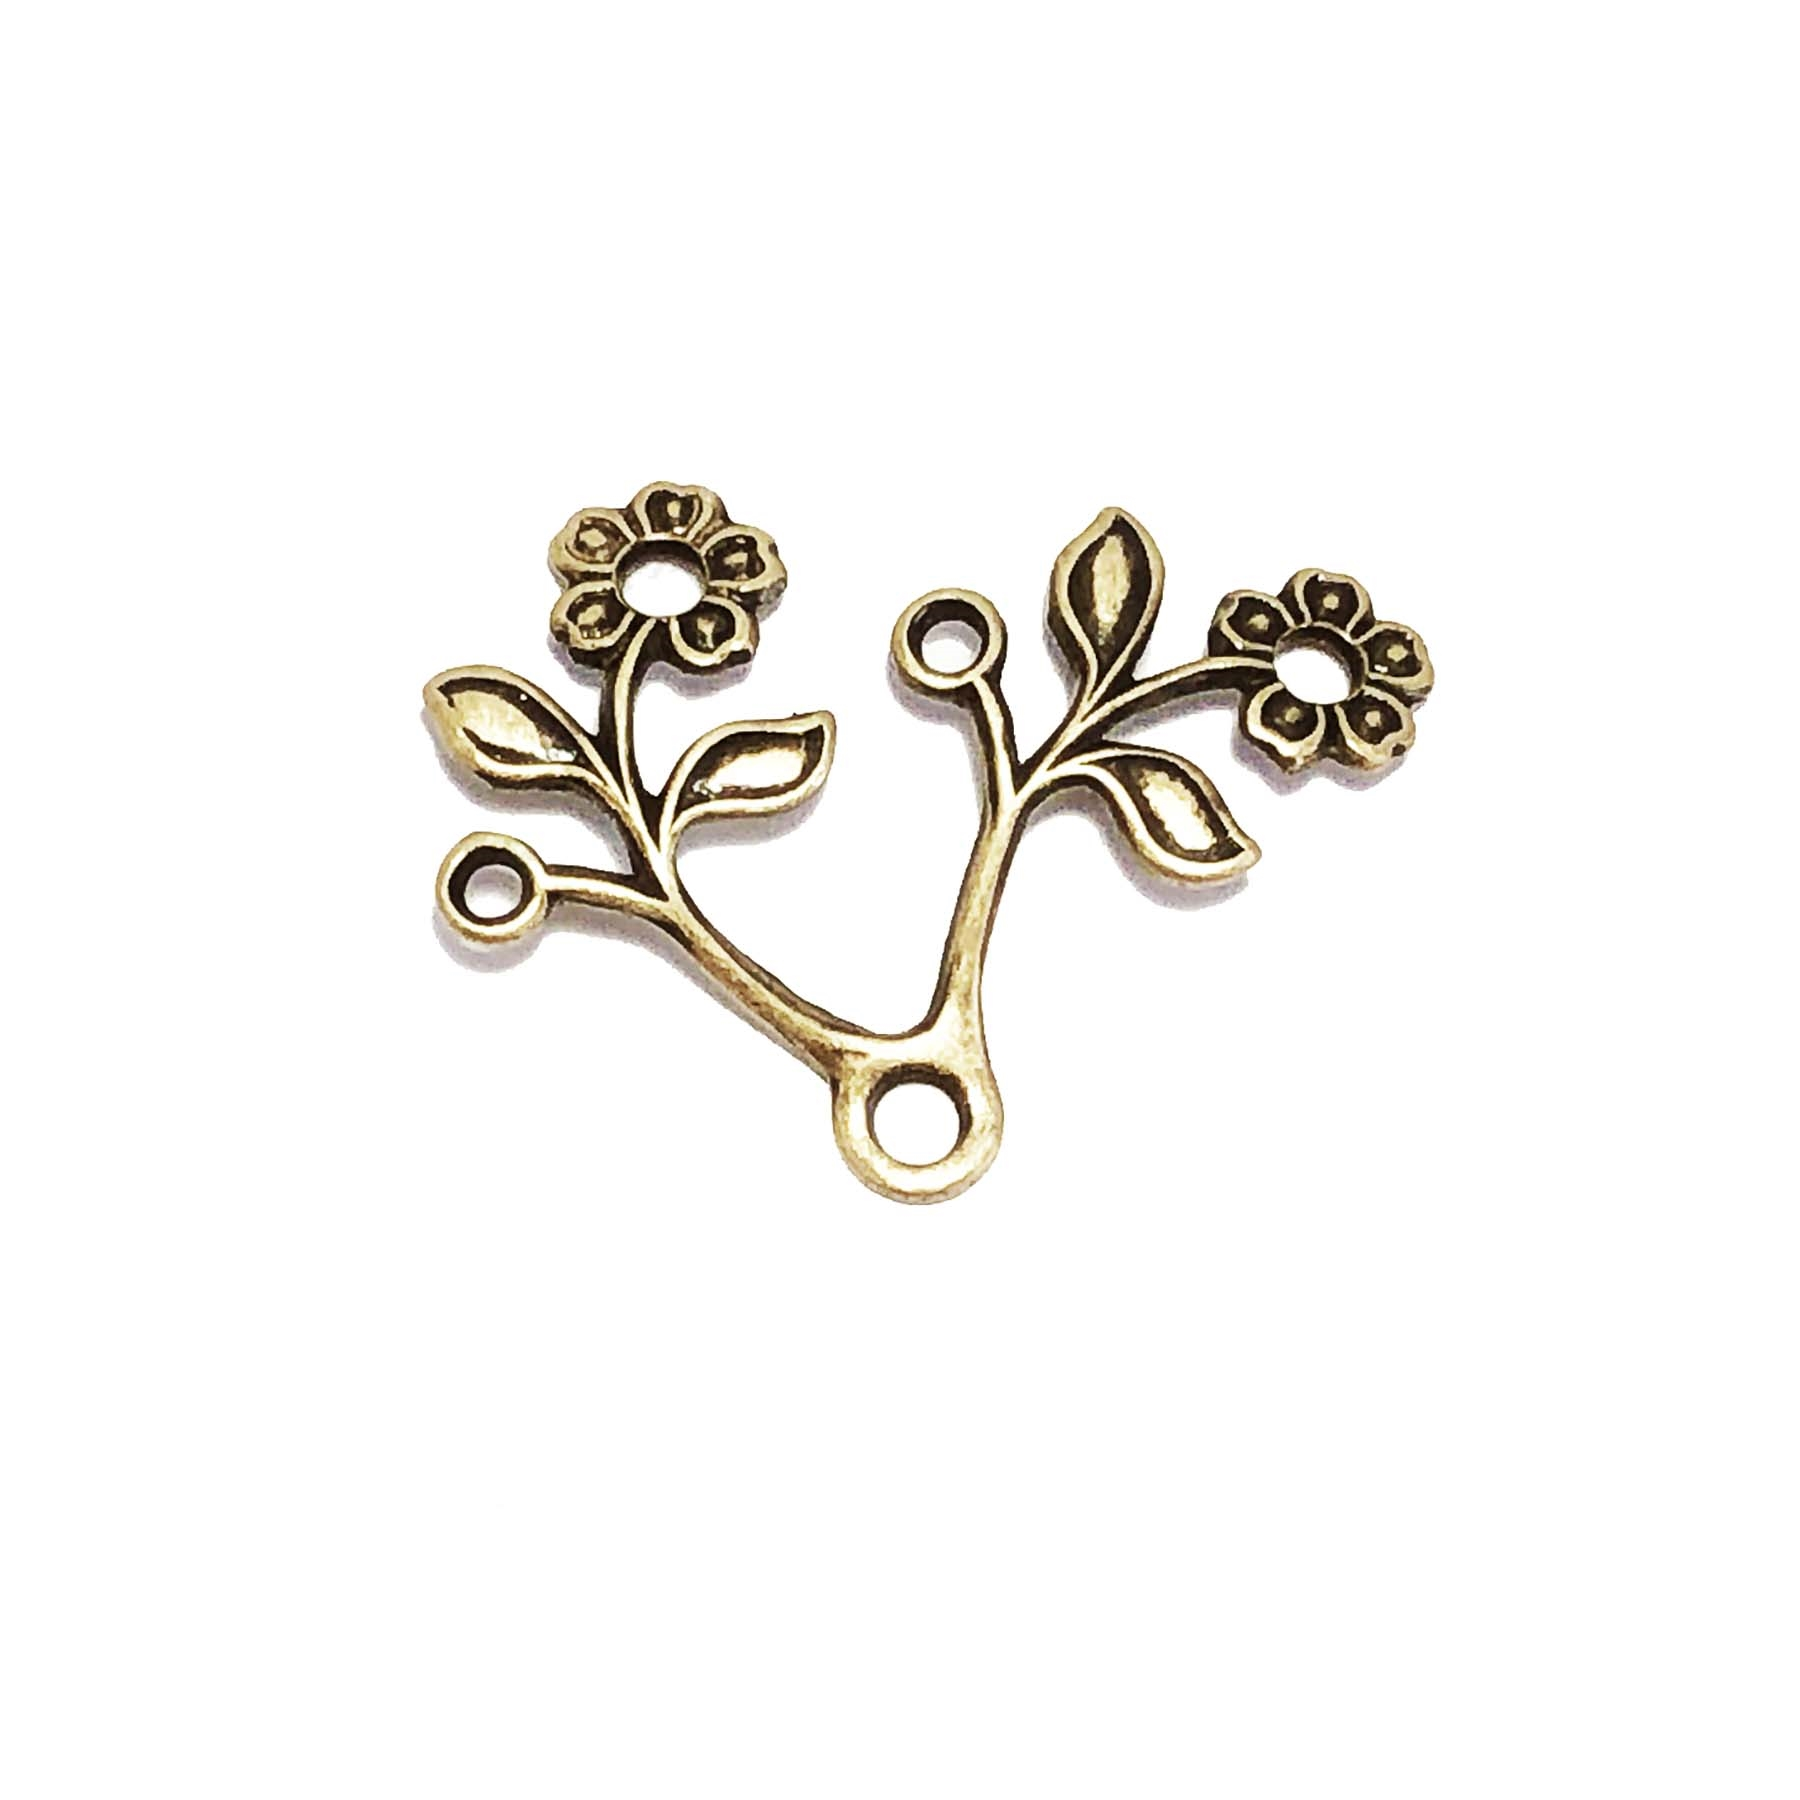 leaf stampings, floral stampings, brass ox, 0756, brass jewelry supplies, vintage jewelry supplies, B'sue Boutiques, nickel free, US made, beading supplies, rivet hole stampings, antique brass, floral leaf sprig, floral branch